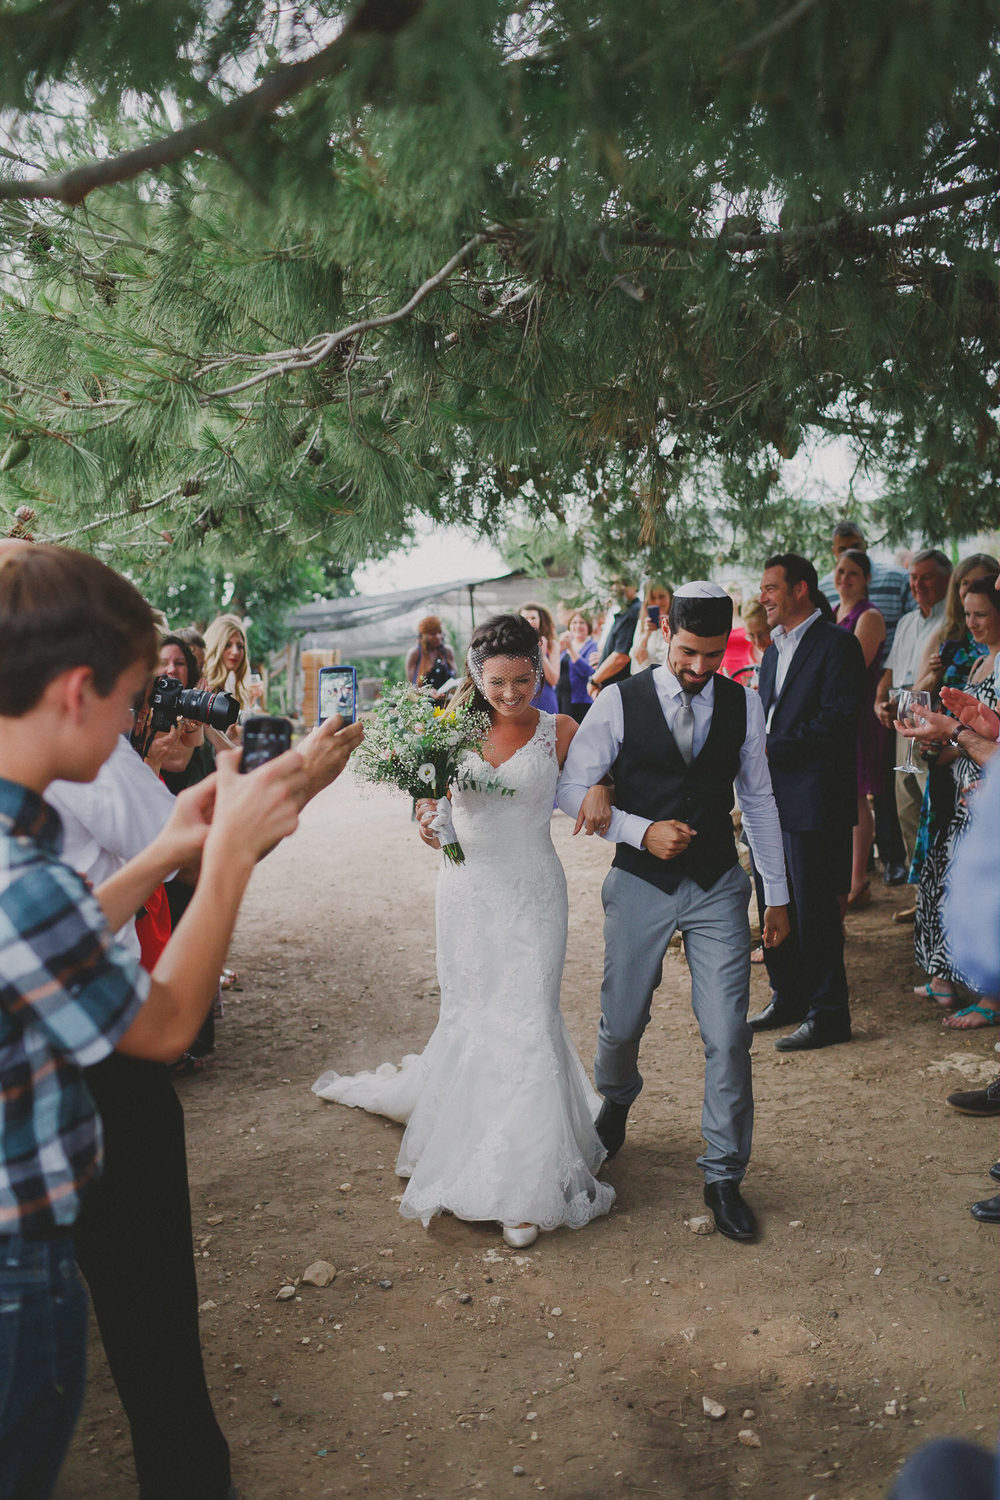 Countryside Wedding - Liron Erel - Echoes & Wildhearts 0083.jpg